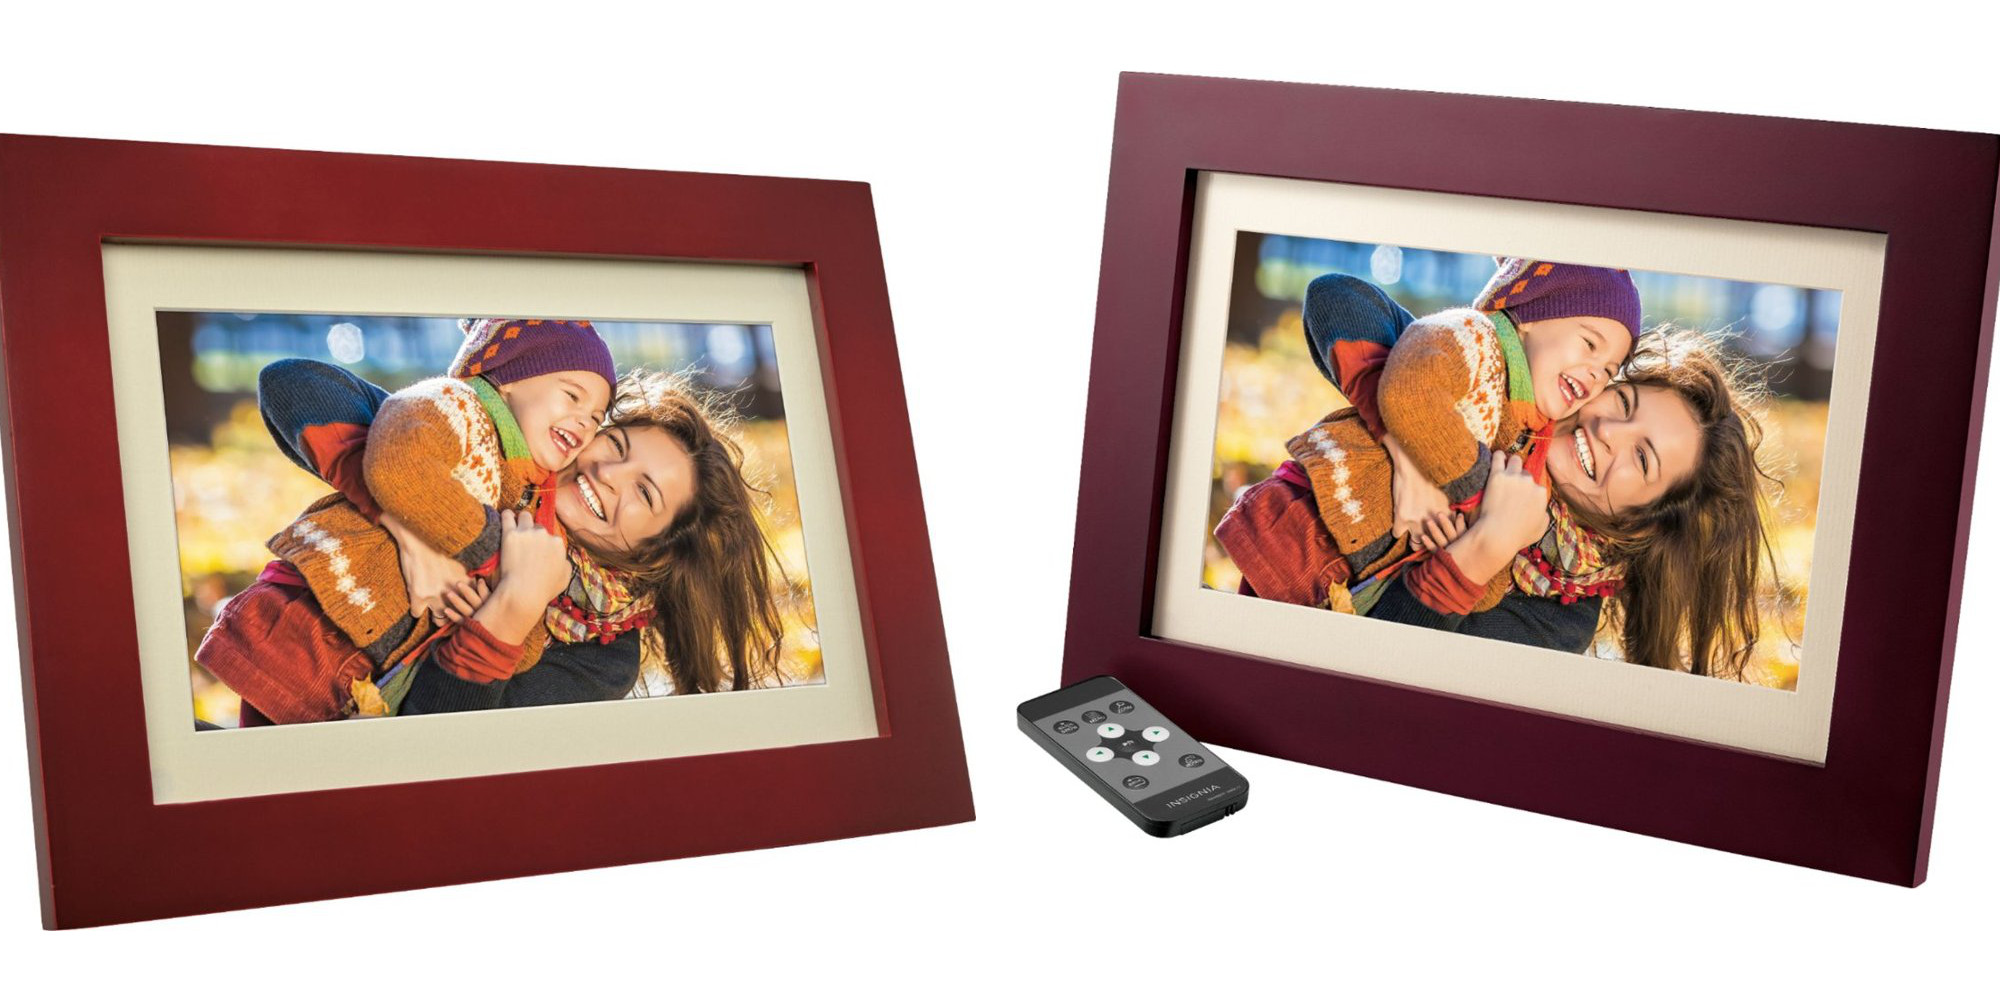 Put Insignia's 10-inch Wood Digital Photo Frame with remote in the family room for $45 (Reg. $80)